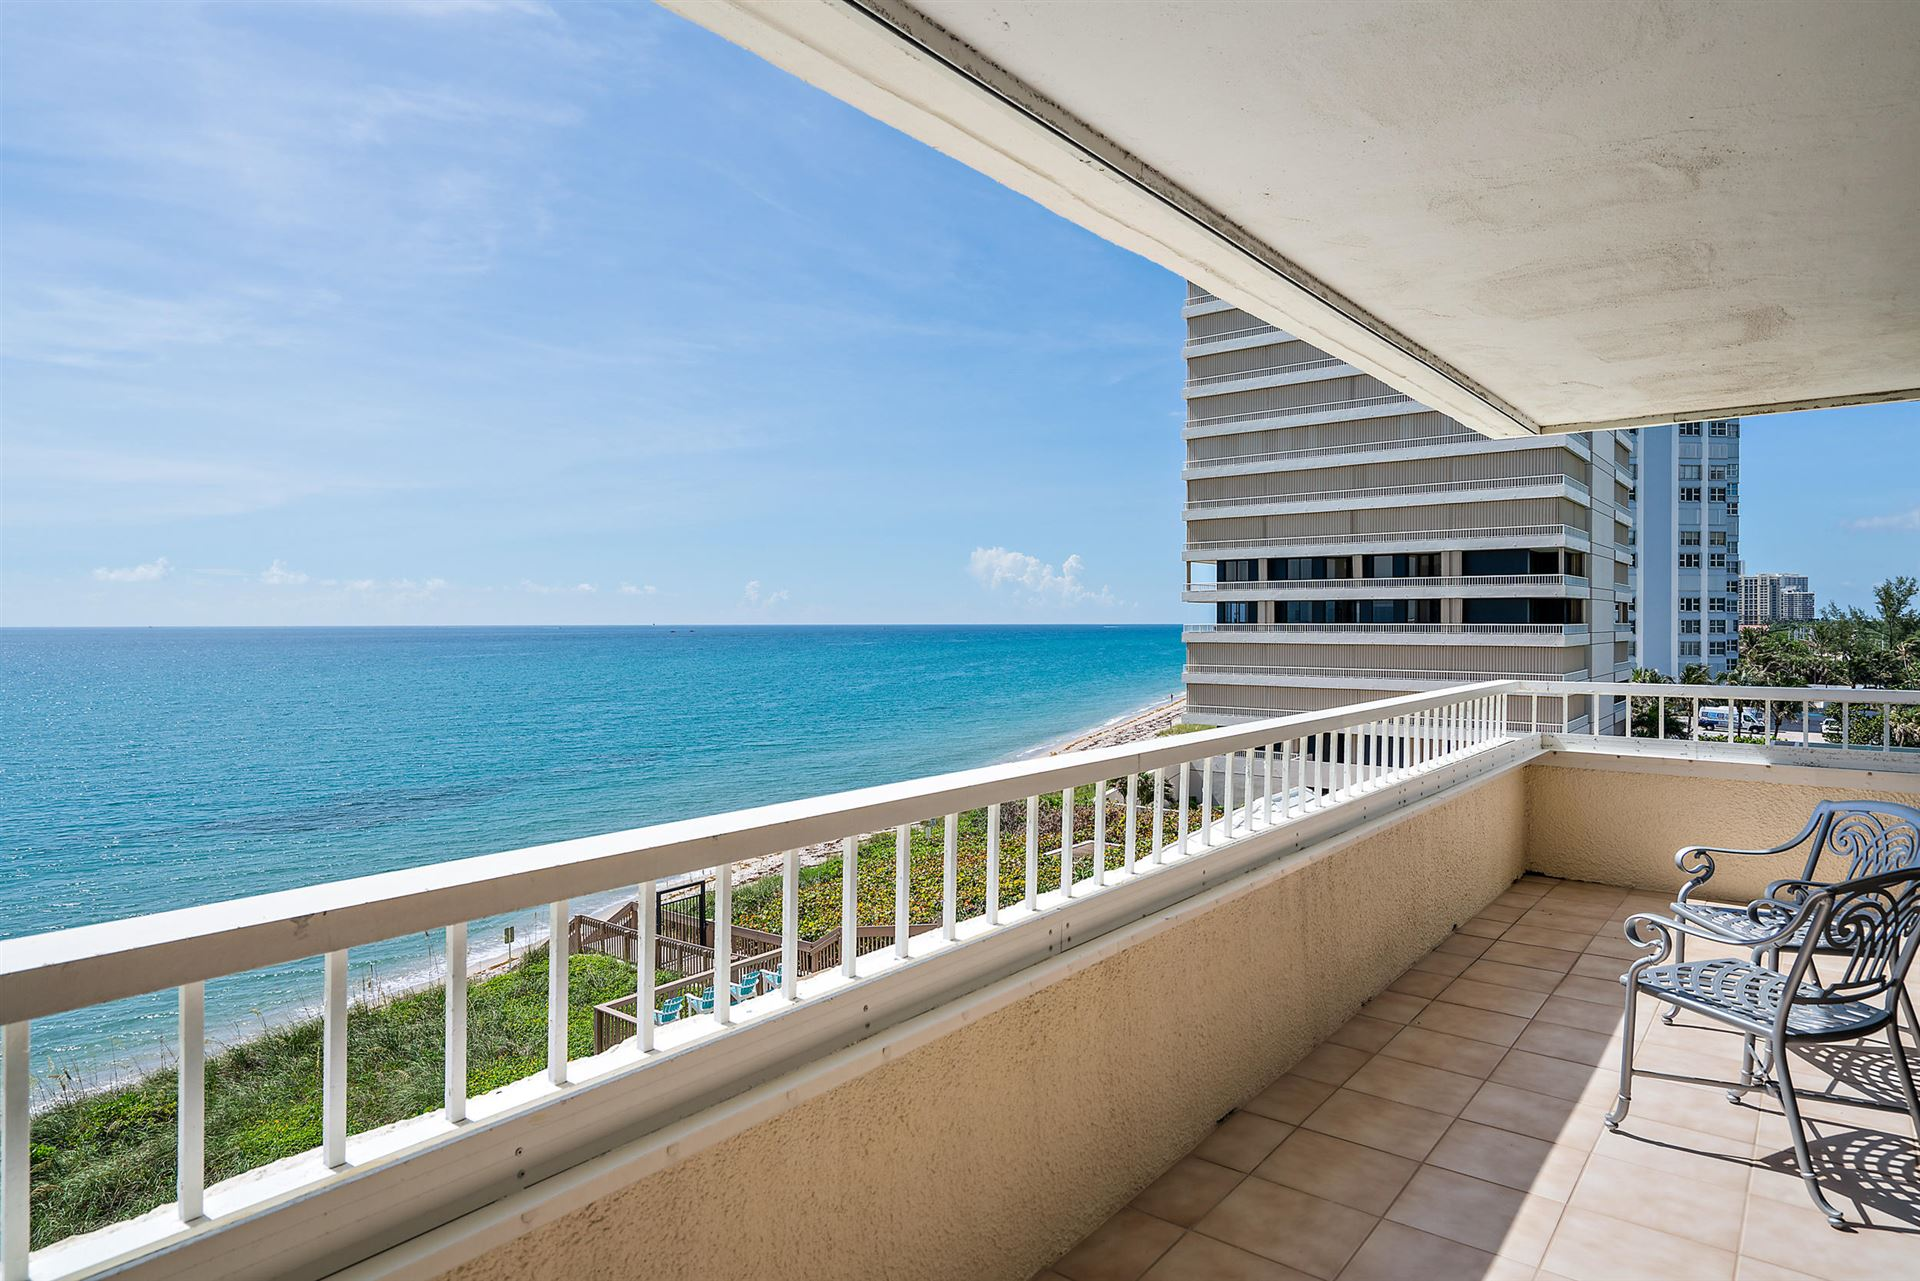 Photo of 5280 N Ocean Drive #3-A, Singer Island, FL 33404 (MLS # RX-10634619)